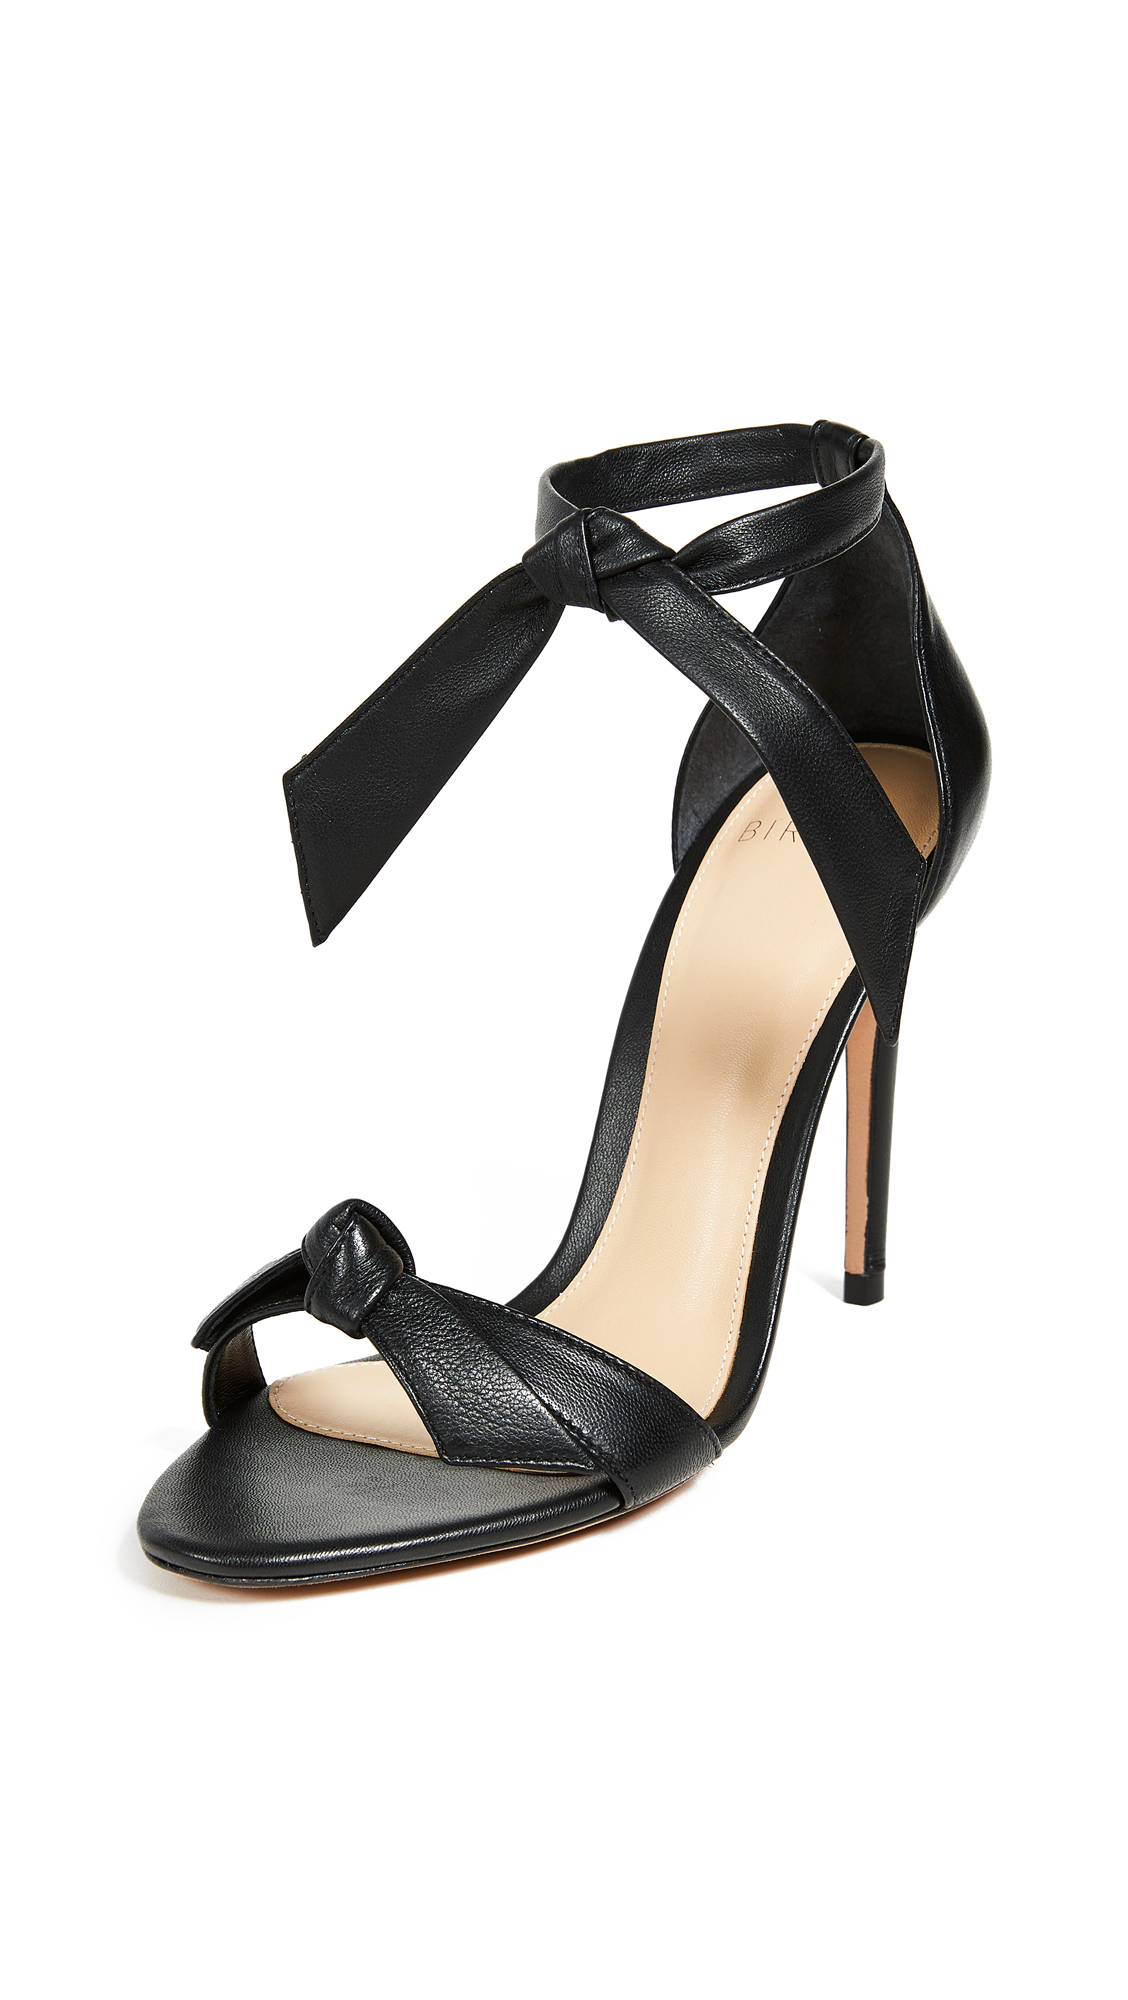 Alexandre Birman Clarita Sandals - Black